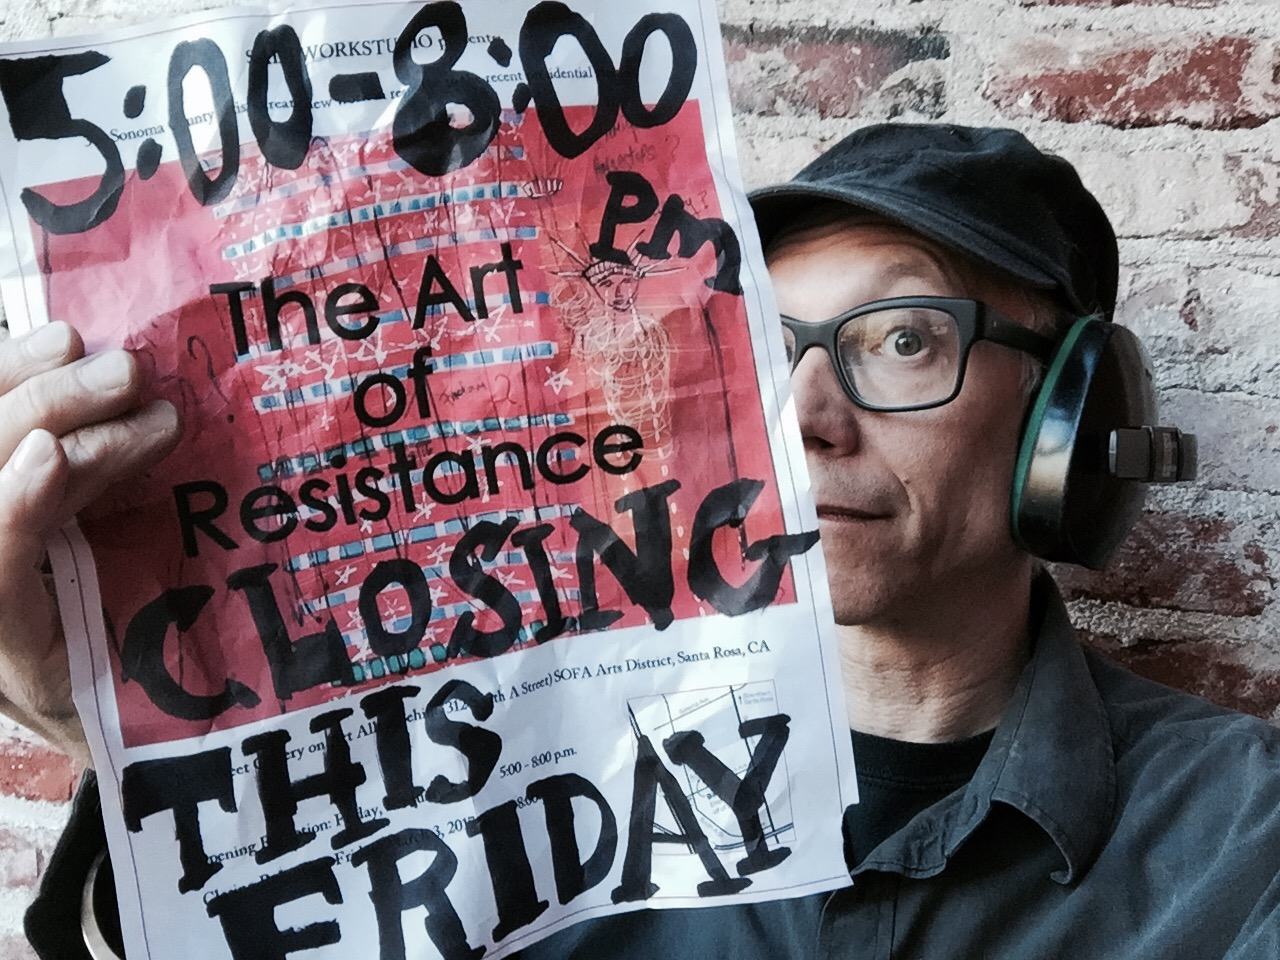 Art of Resistance  closing reception. Friday, March 3, 2017. 5:00 - 8:00 p.m. Santa Rosa SOFA Arts District.